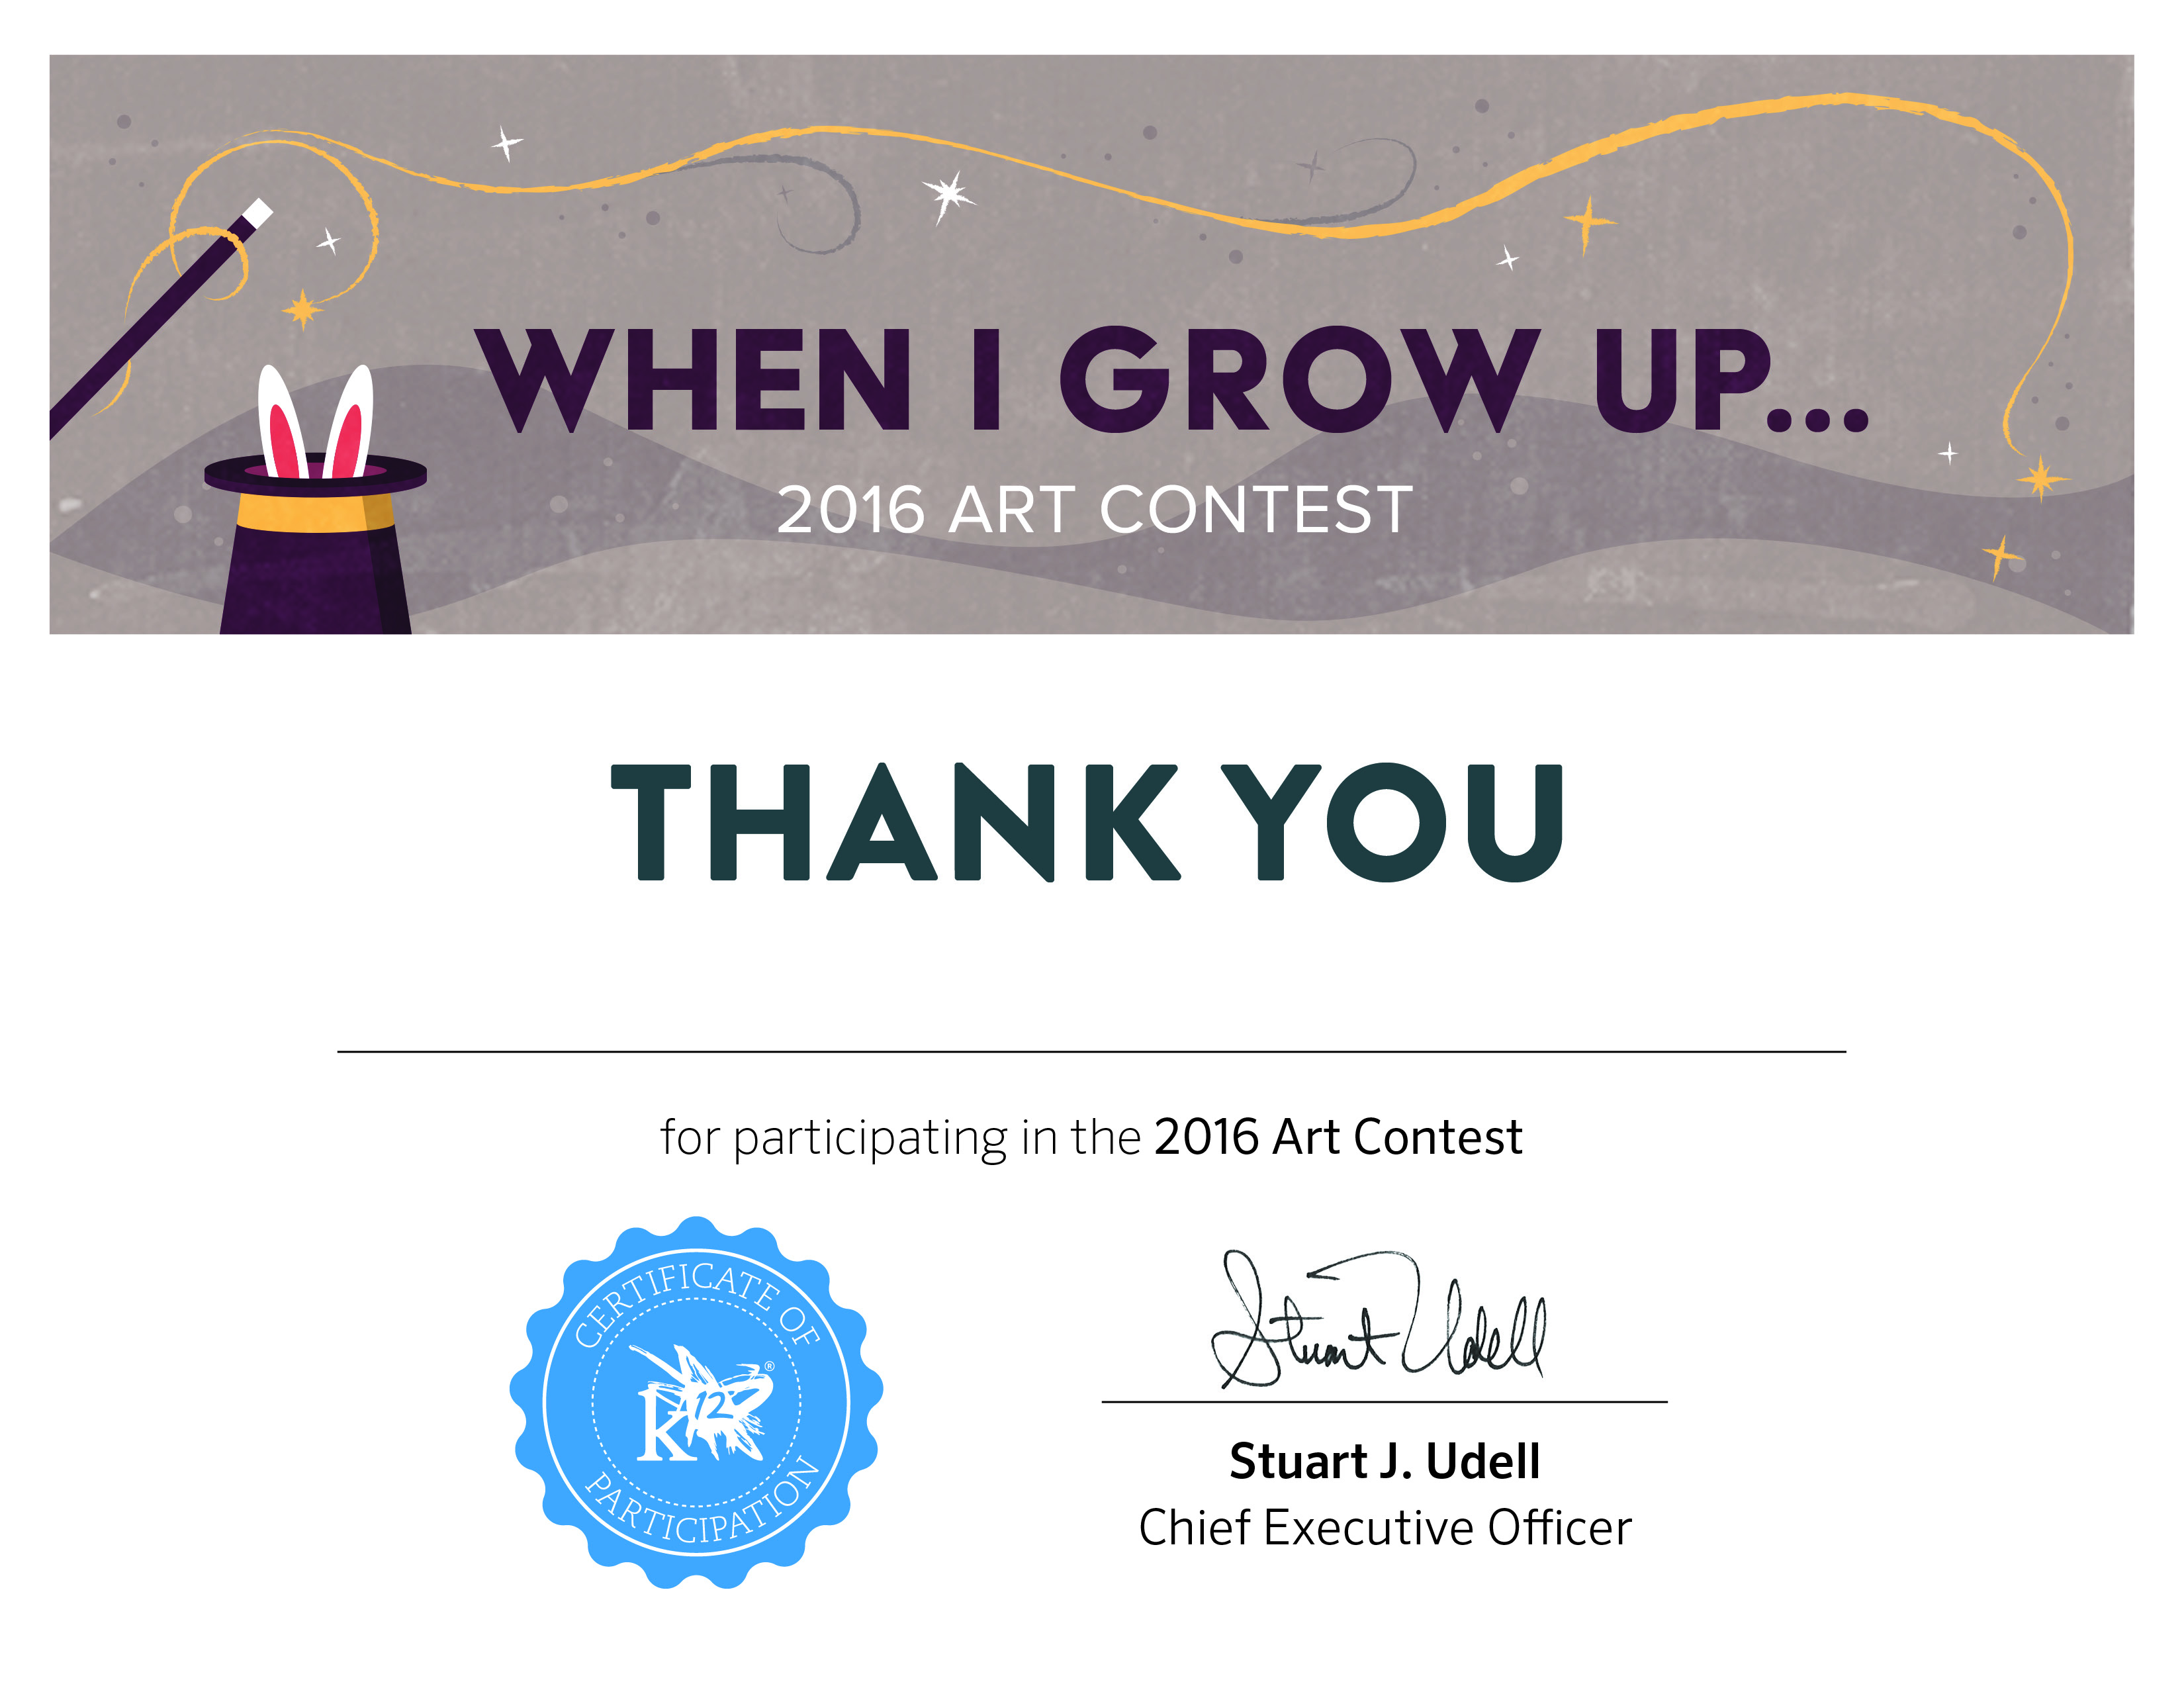 k12 announces winners of the 11th annual art contest learning liftoff